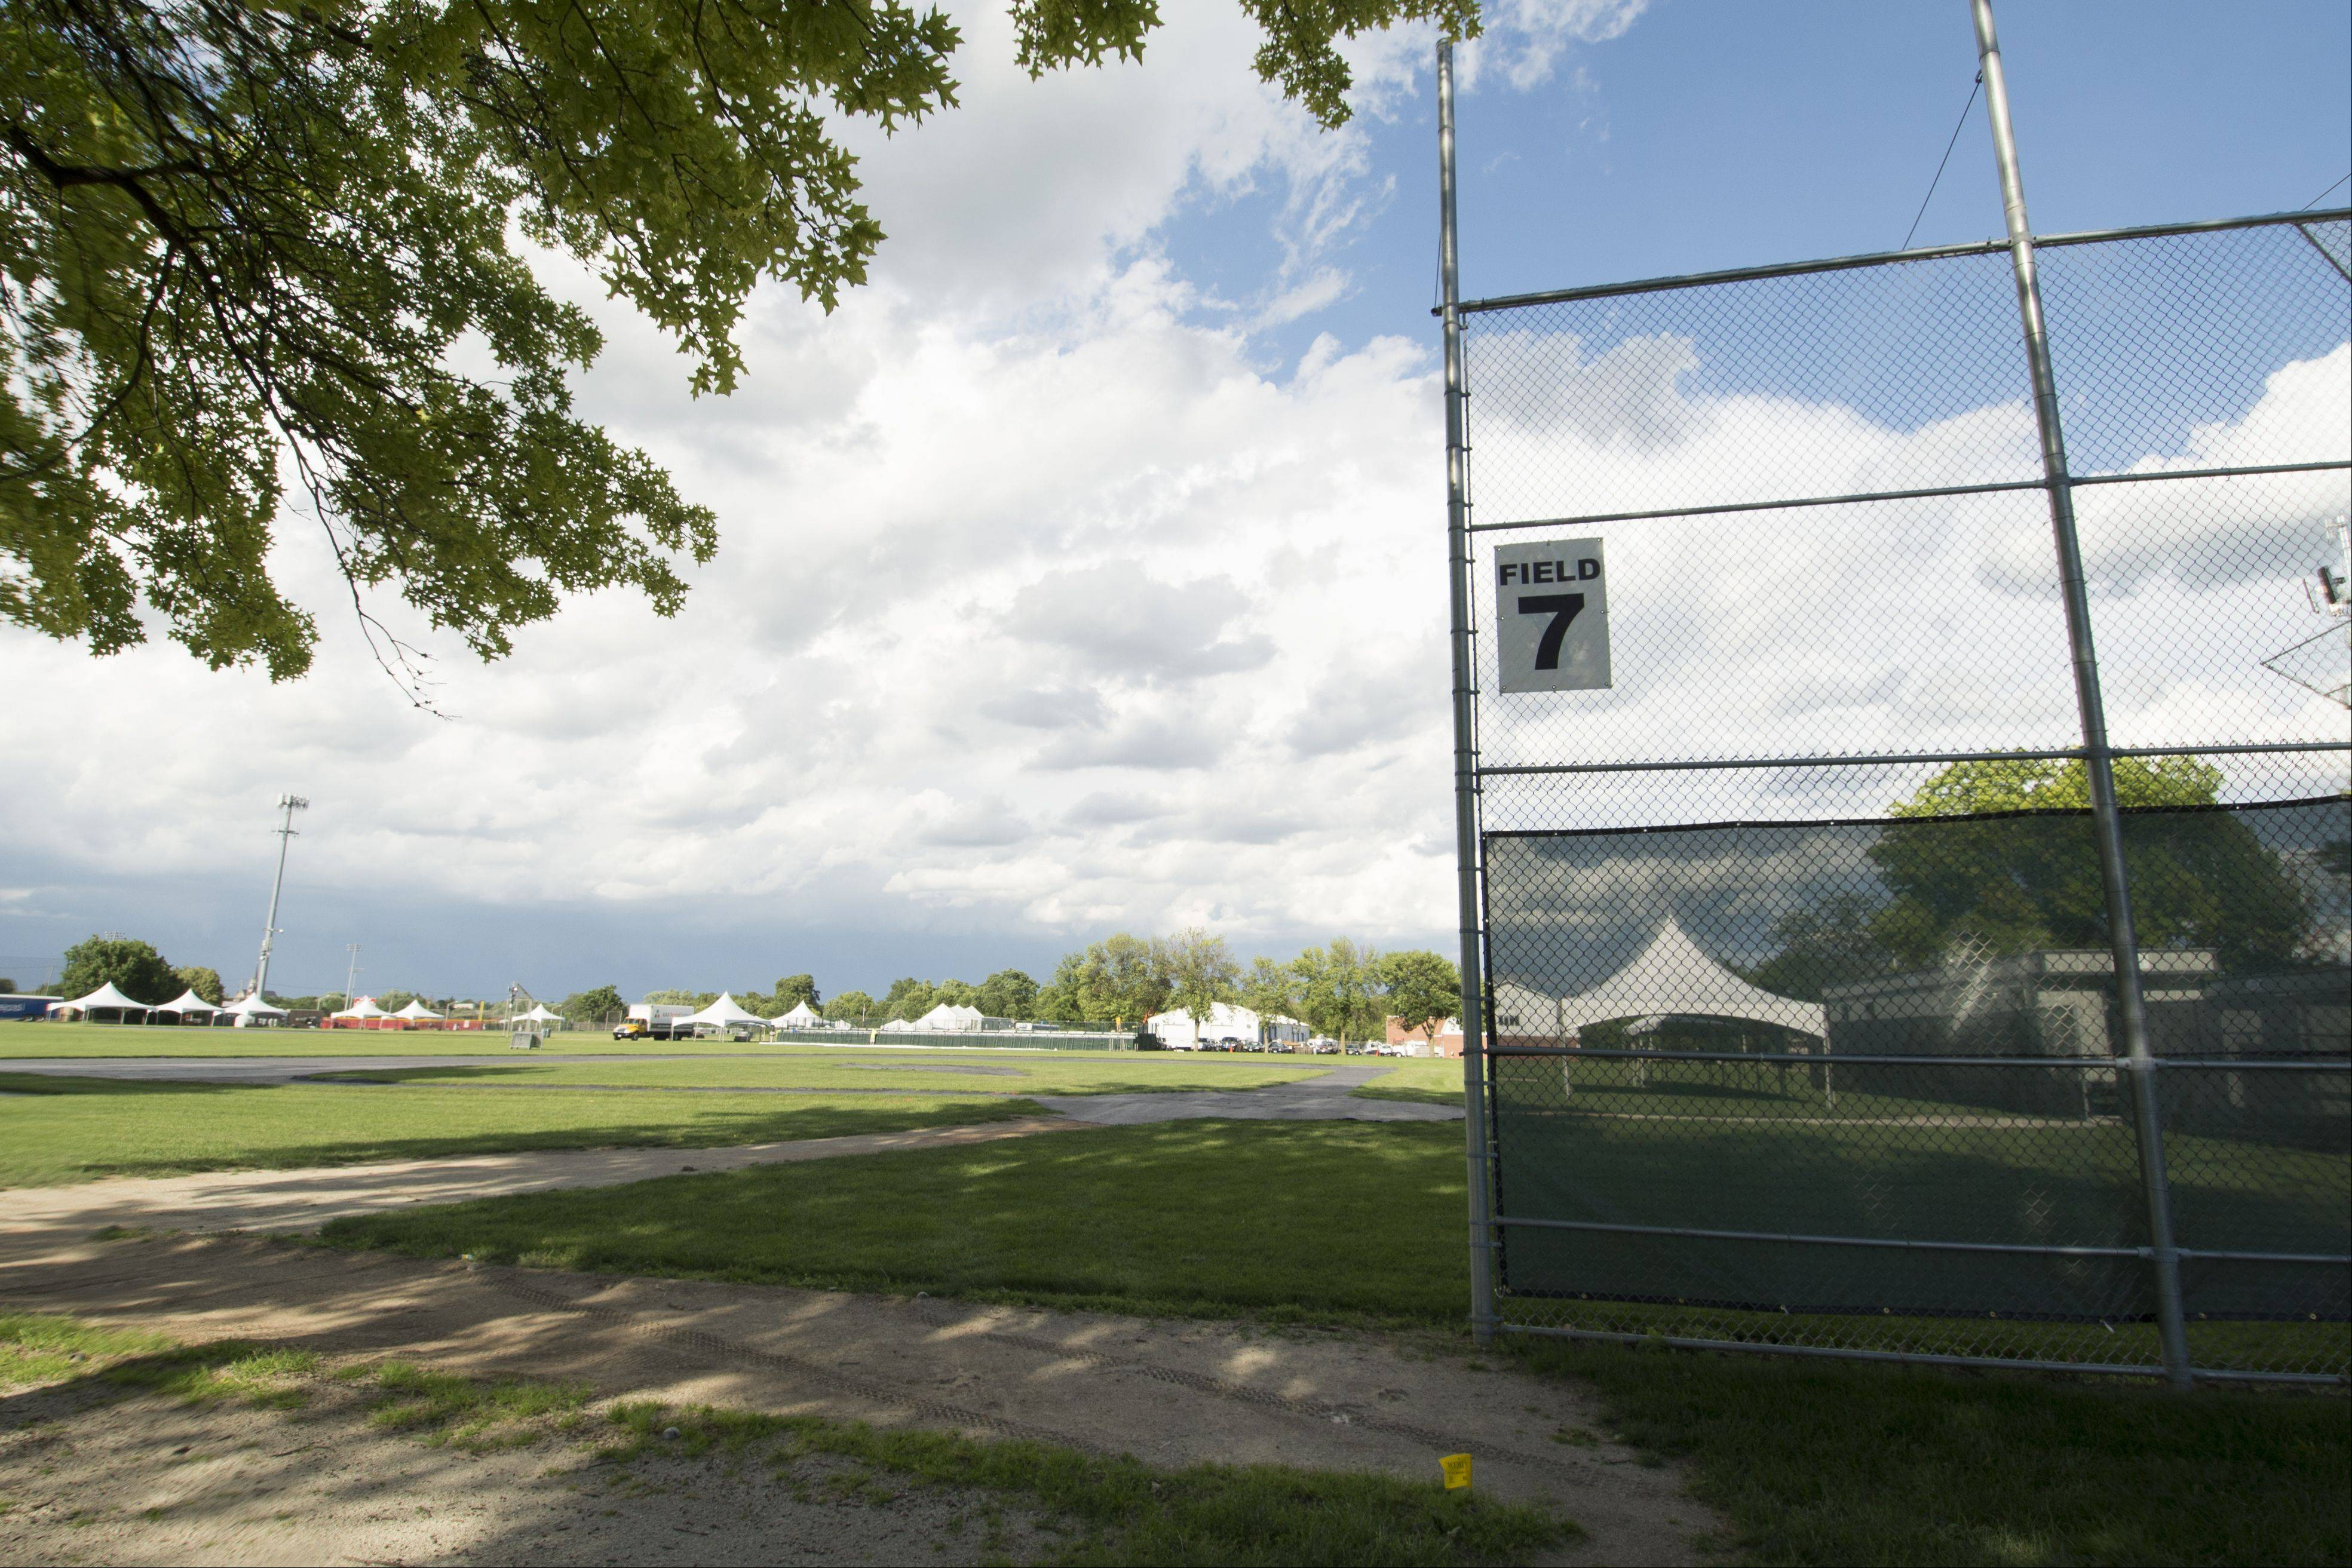 Four ball fields at Knoch Park North will receive improvements including accessible paths for people with disabilities and new backstops during a $600,000 project the Naperville Park District is beginning in mid-July.